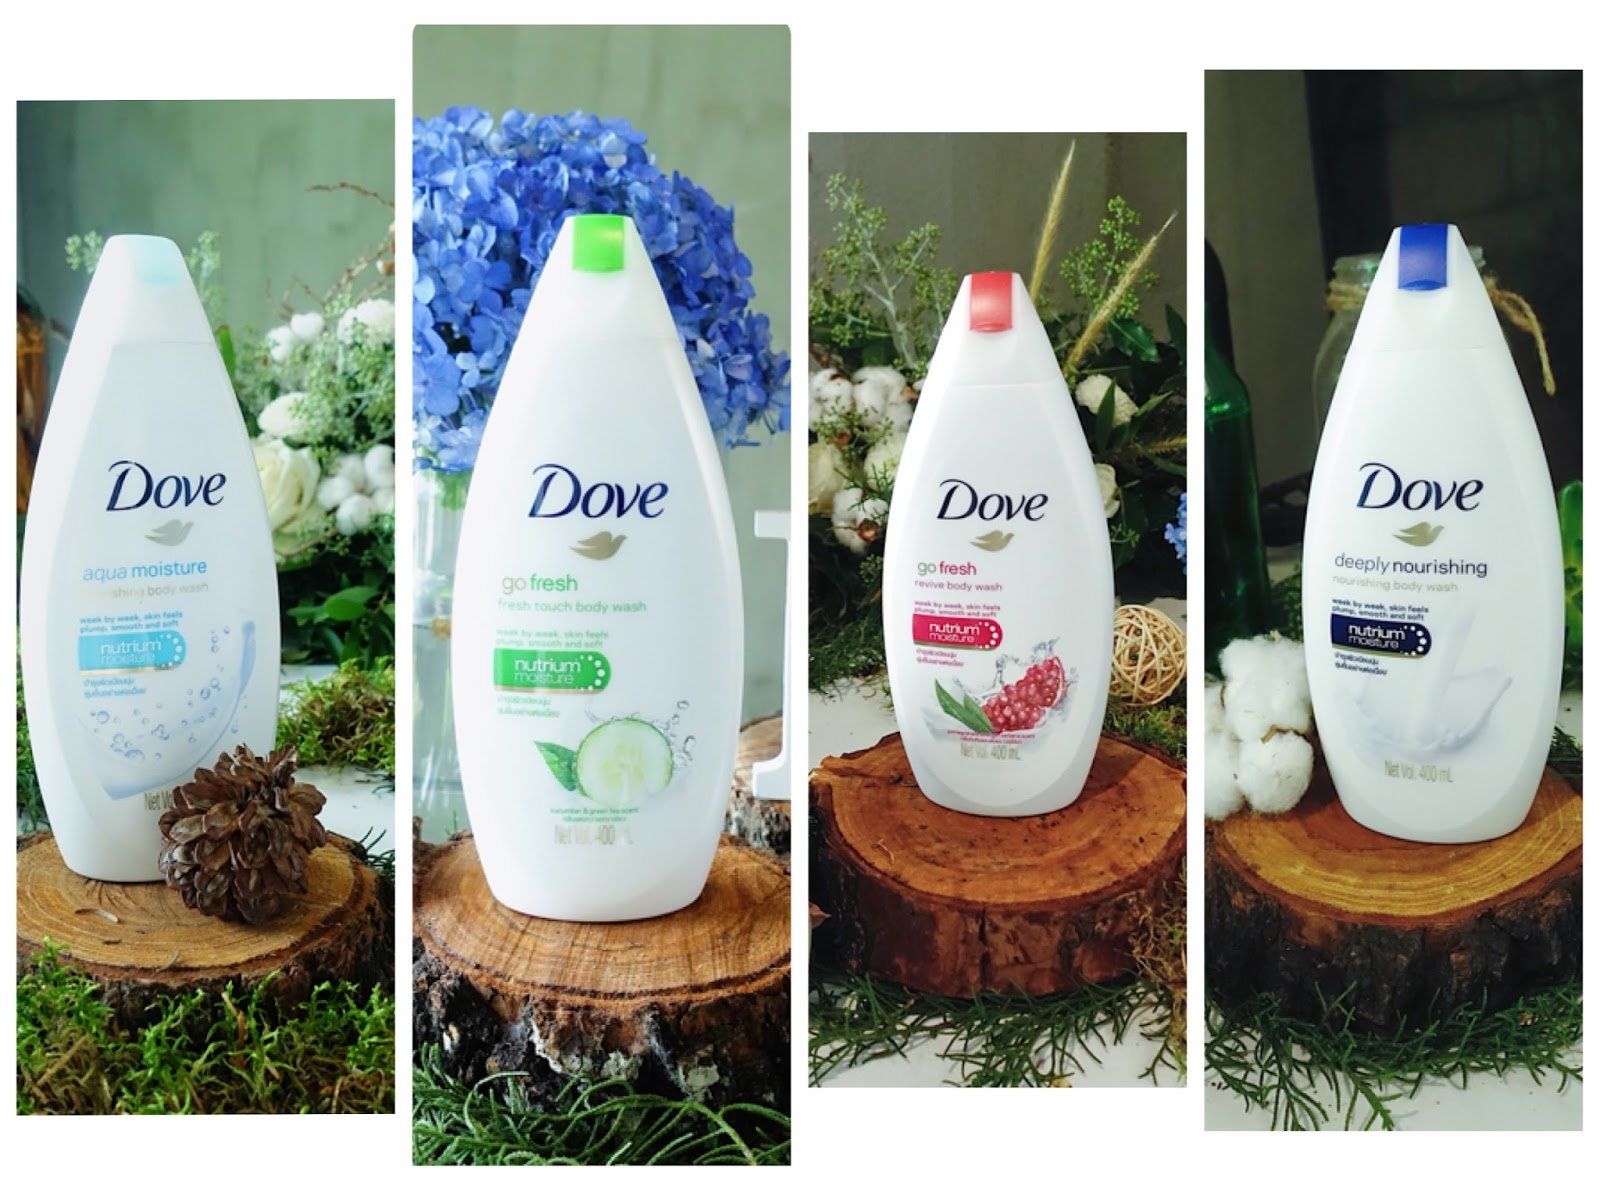 Lily Zhen One Thing At A Time And Conquer The World Dove Go Aqua Moisture Body Wash Refill 400 Ml There Are 4 Scents Available In Indonesia Currently I Wish Theyd Release Other Near Future Heres An Overview Of